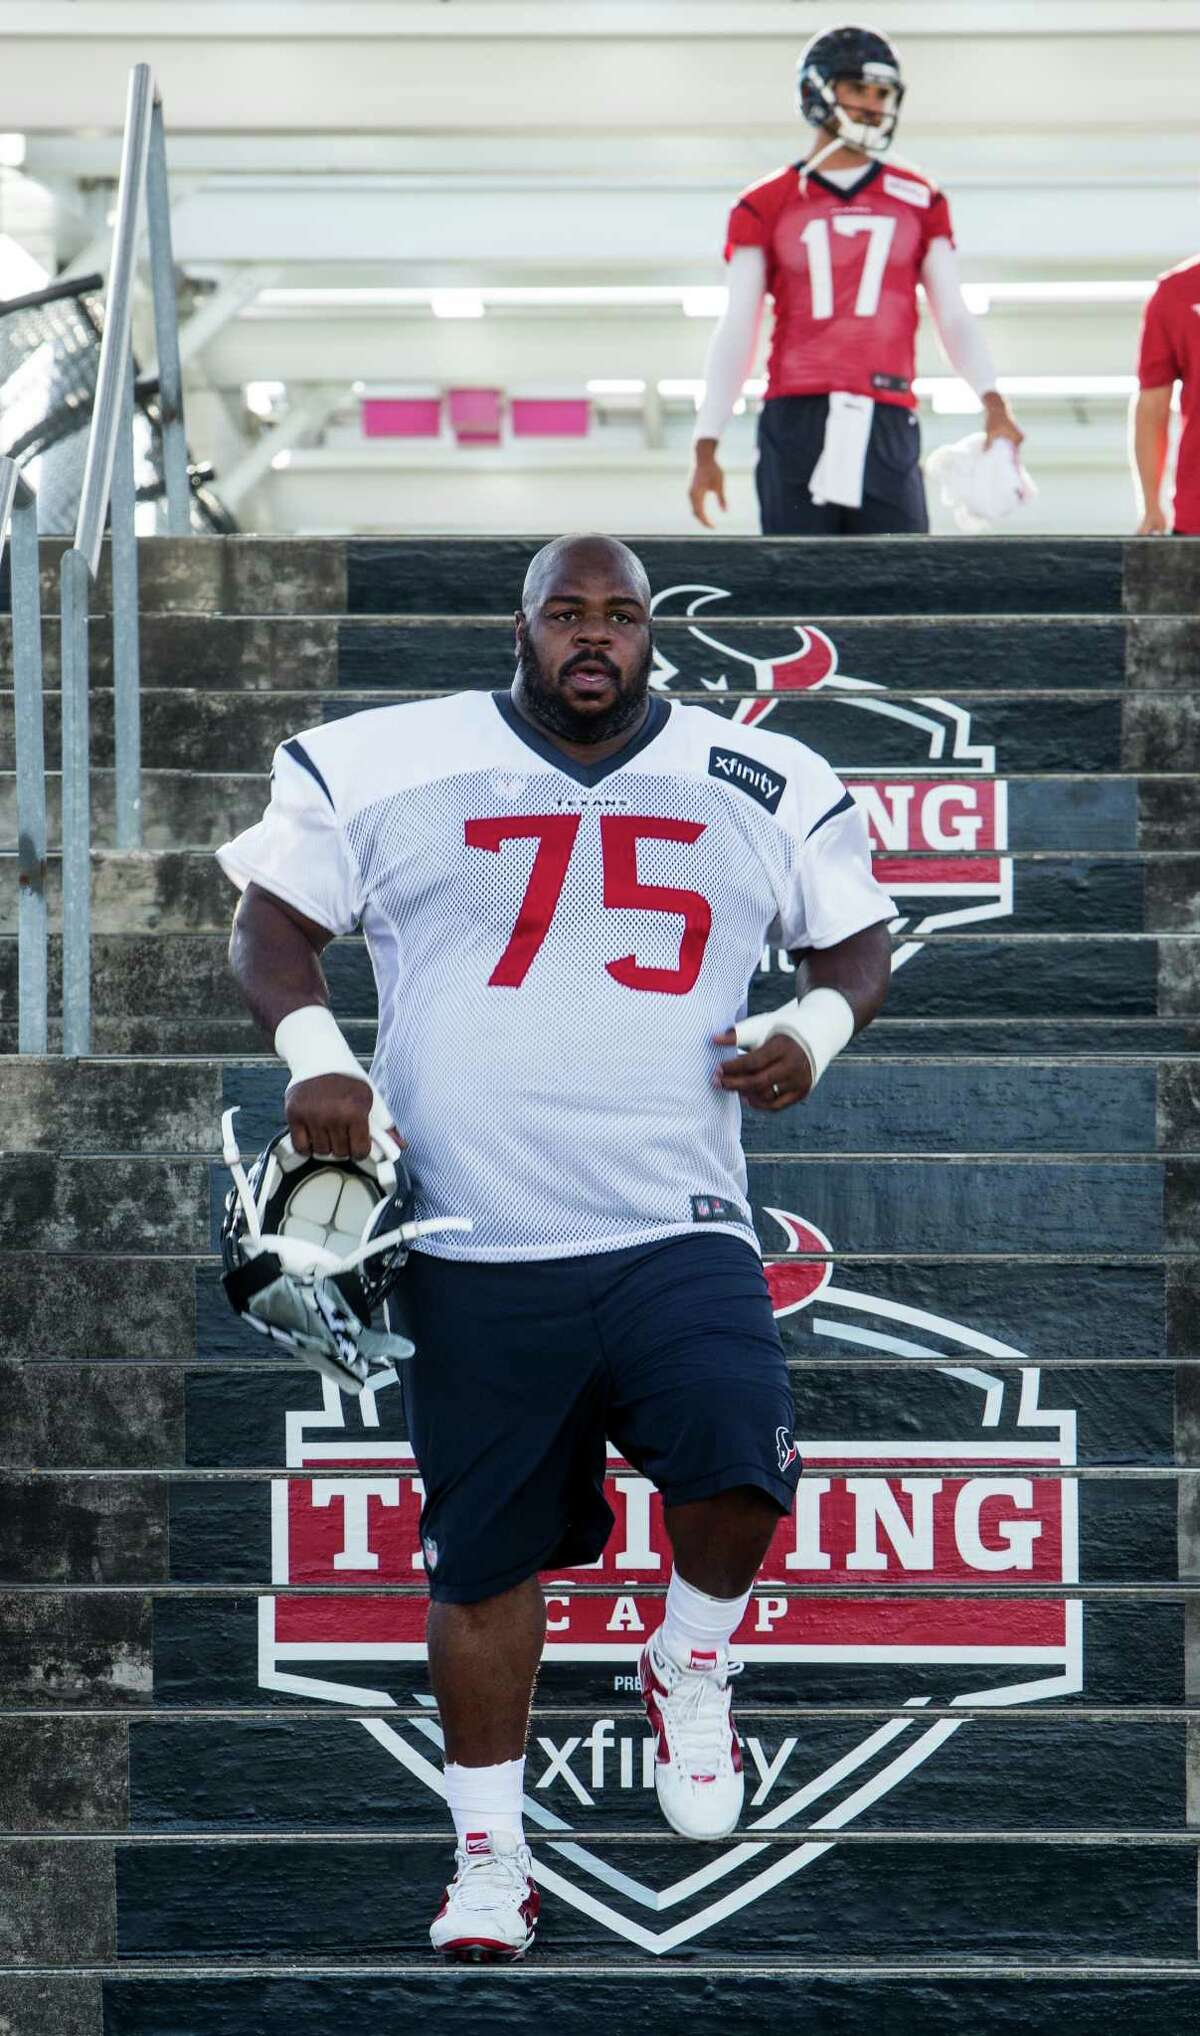 Houston Texans nose tackle Vince Wilfork (75) walks down the Kirby bridge stairway on his way to the practice field for the first day of Texans training camp at Houston Methodist Training Center on Sunday, July 31, 2016, in Houston.